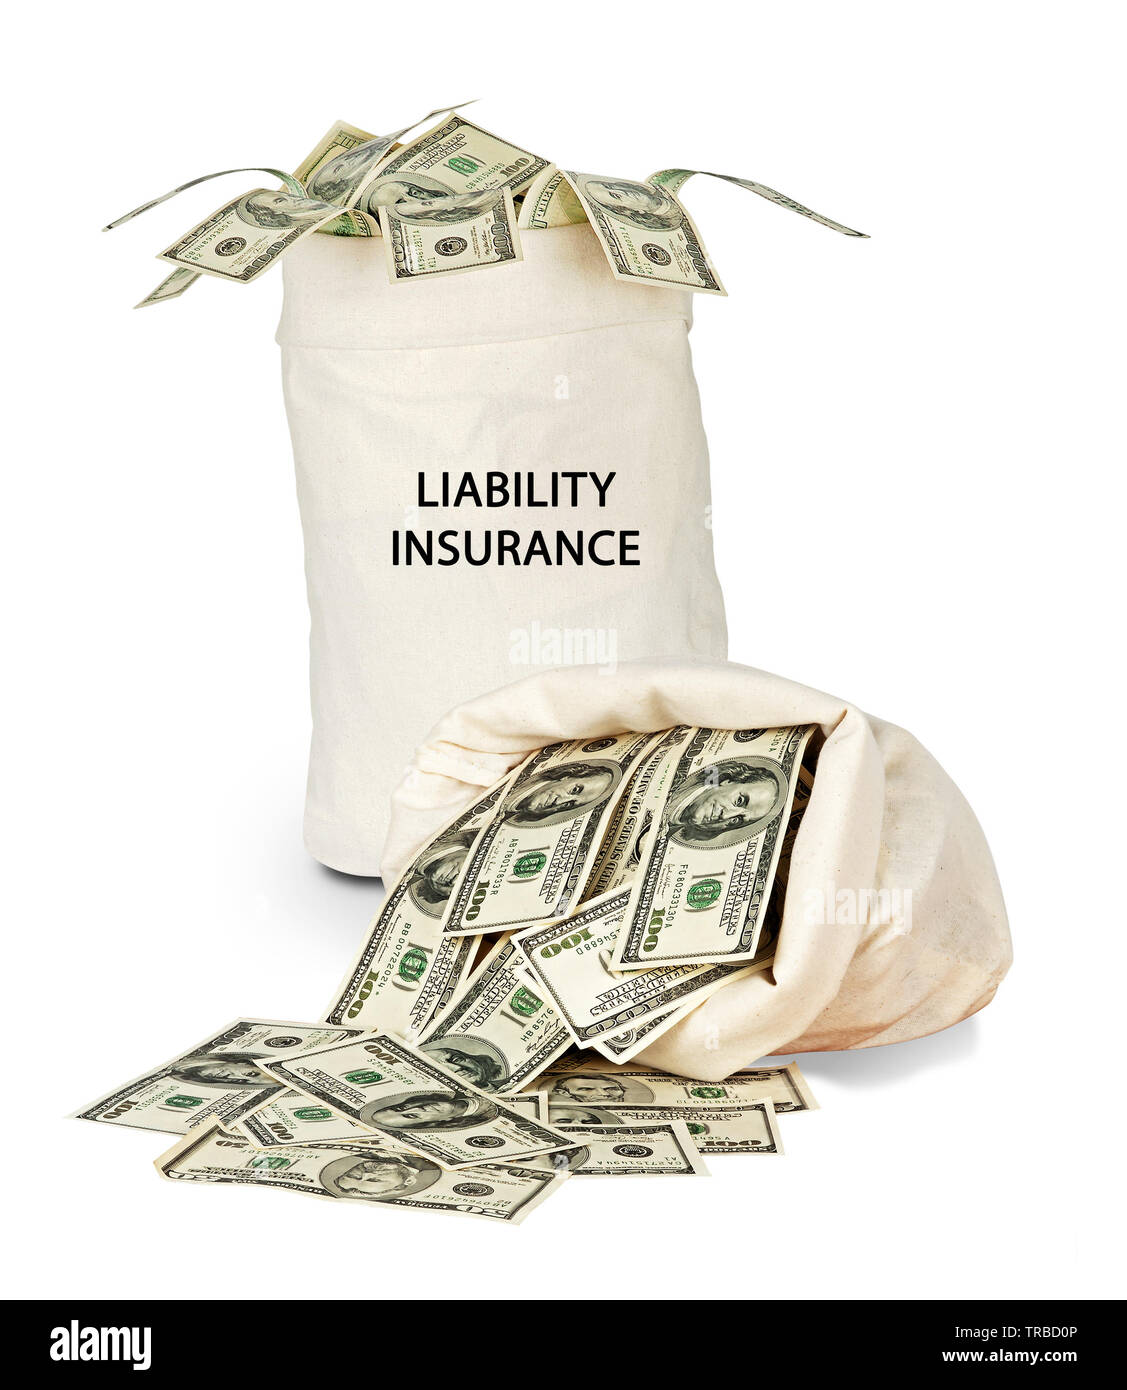 Bag with liability insurance - Stock Image